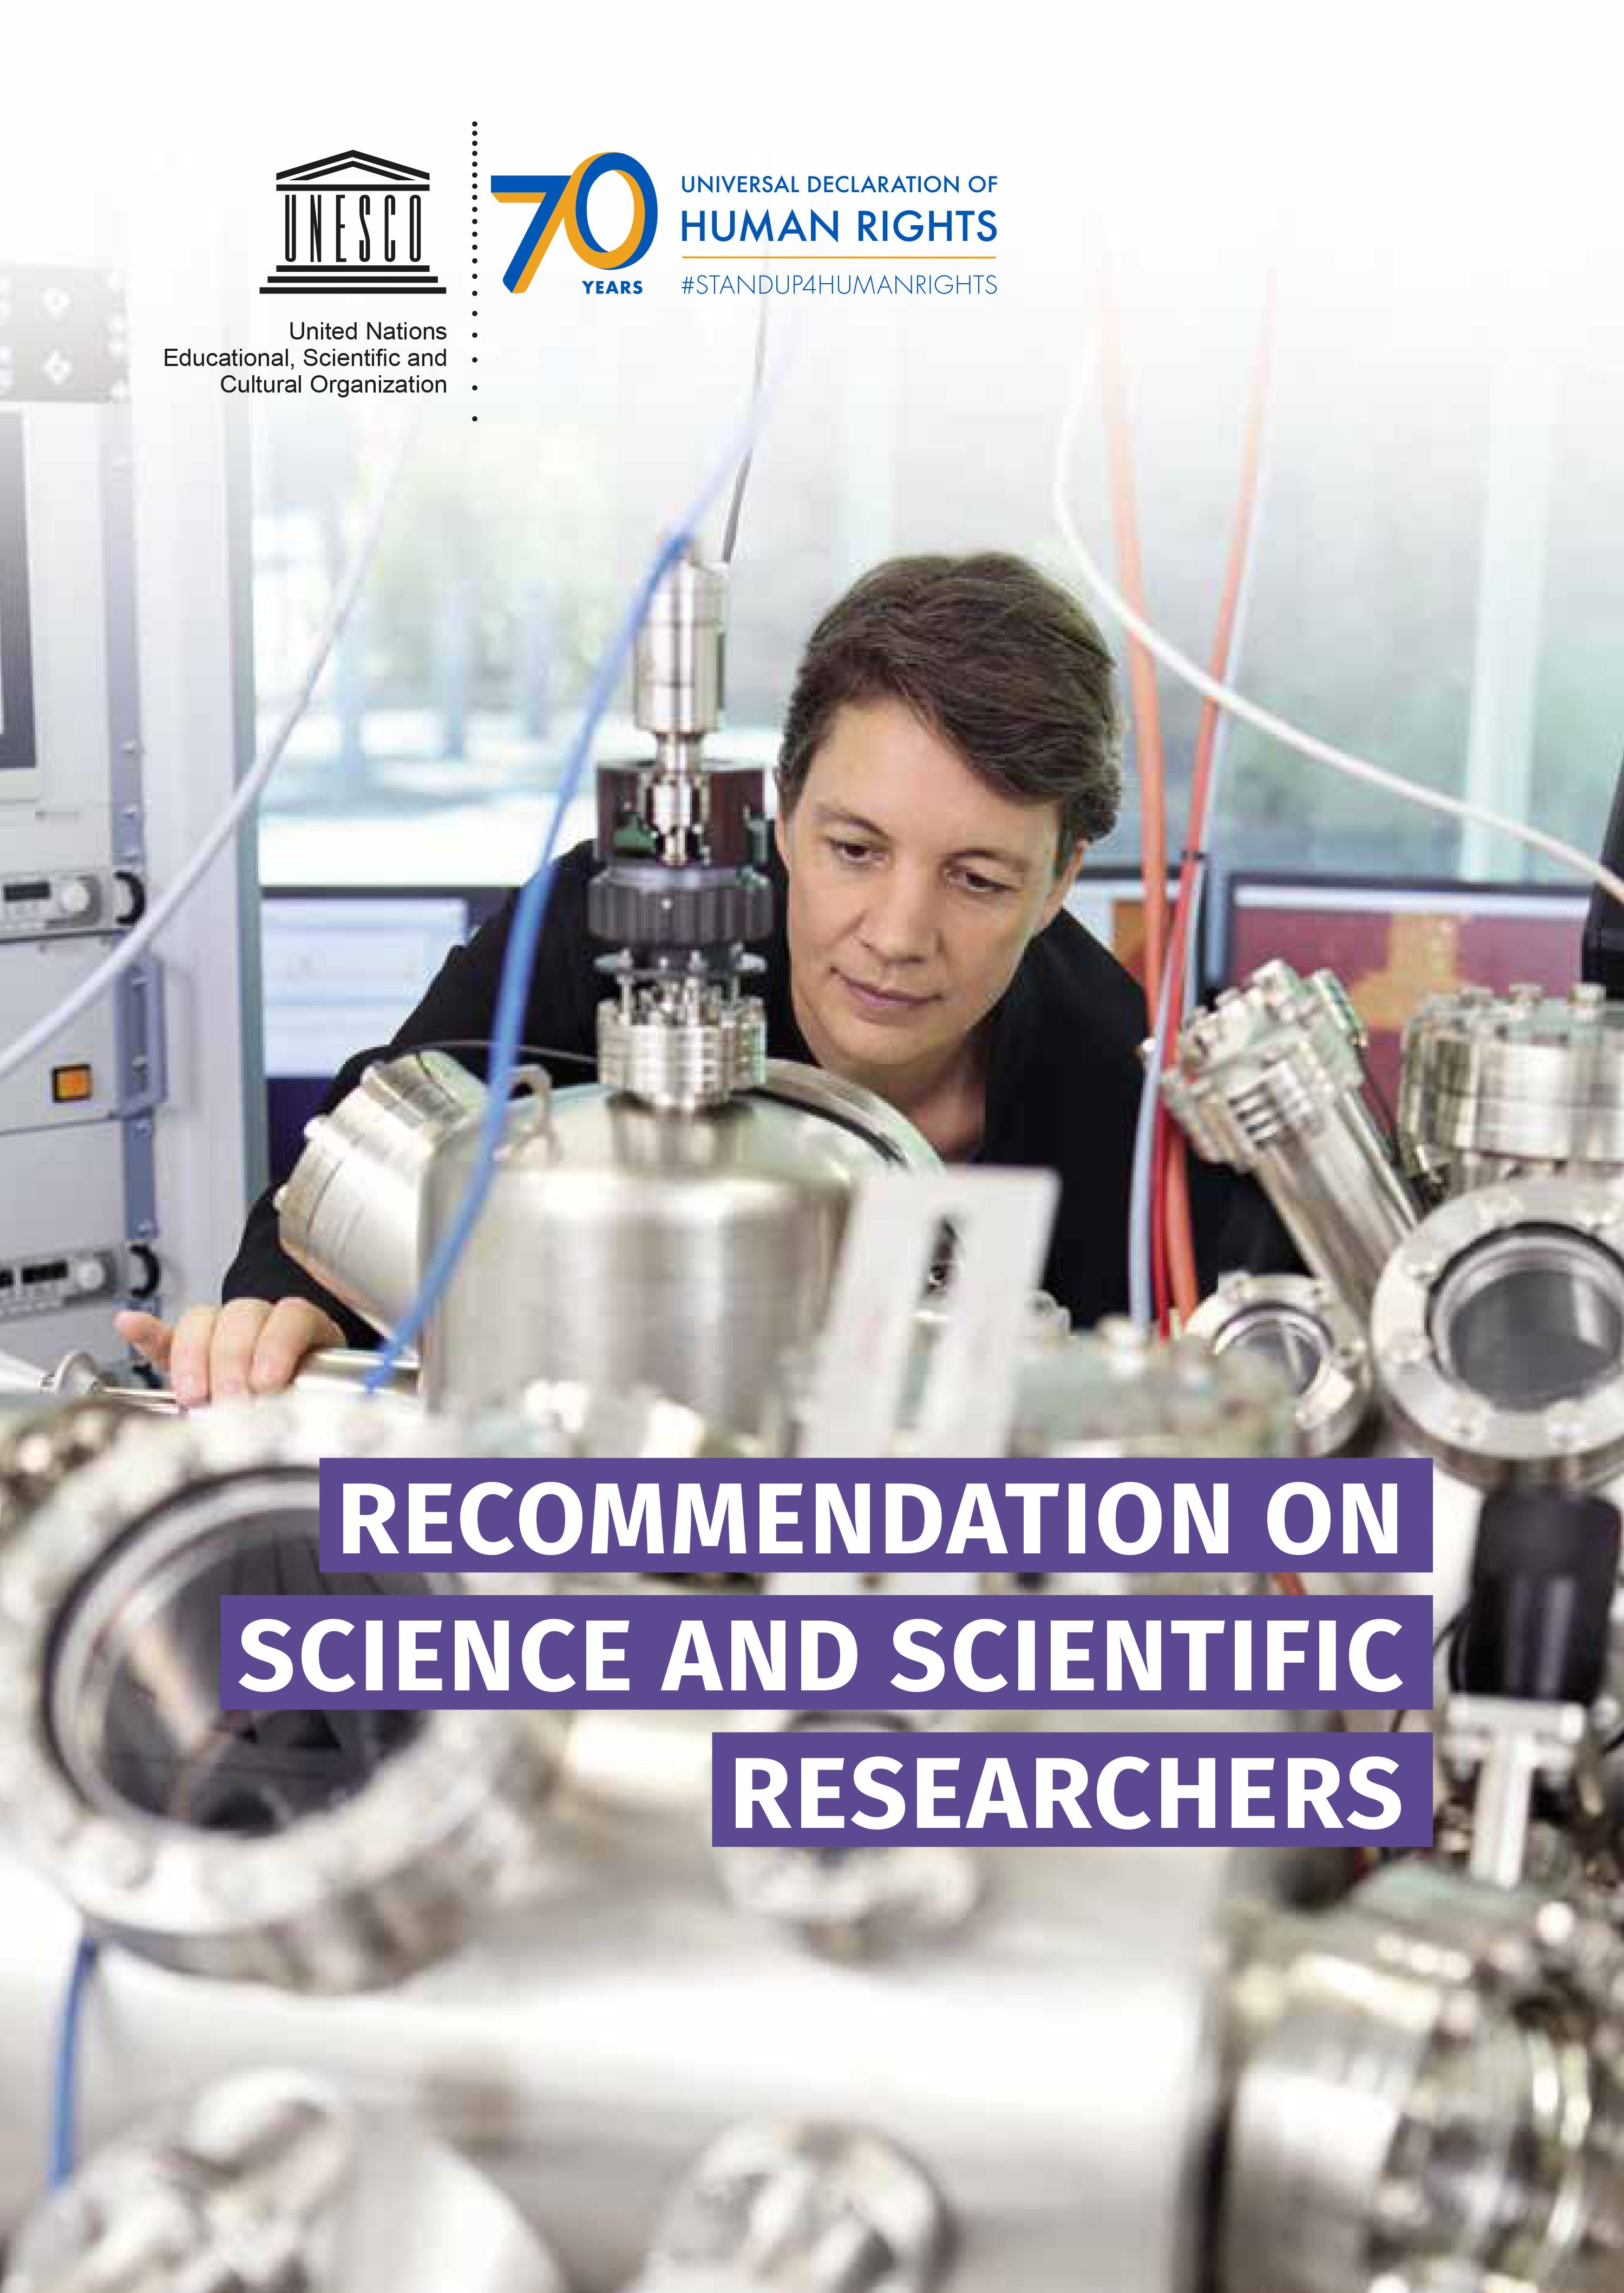 Recommondation on science and scientific researchers